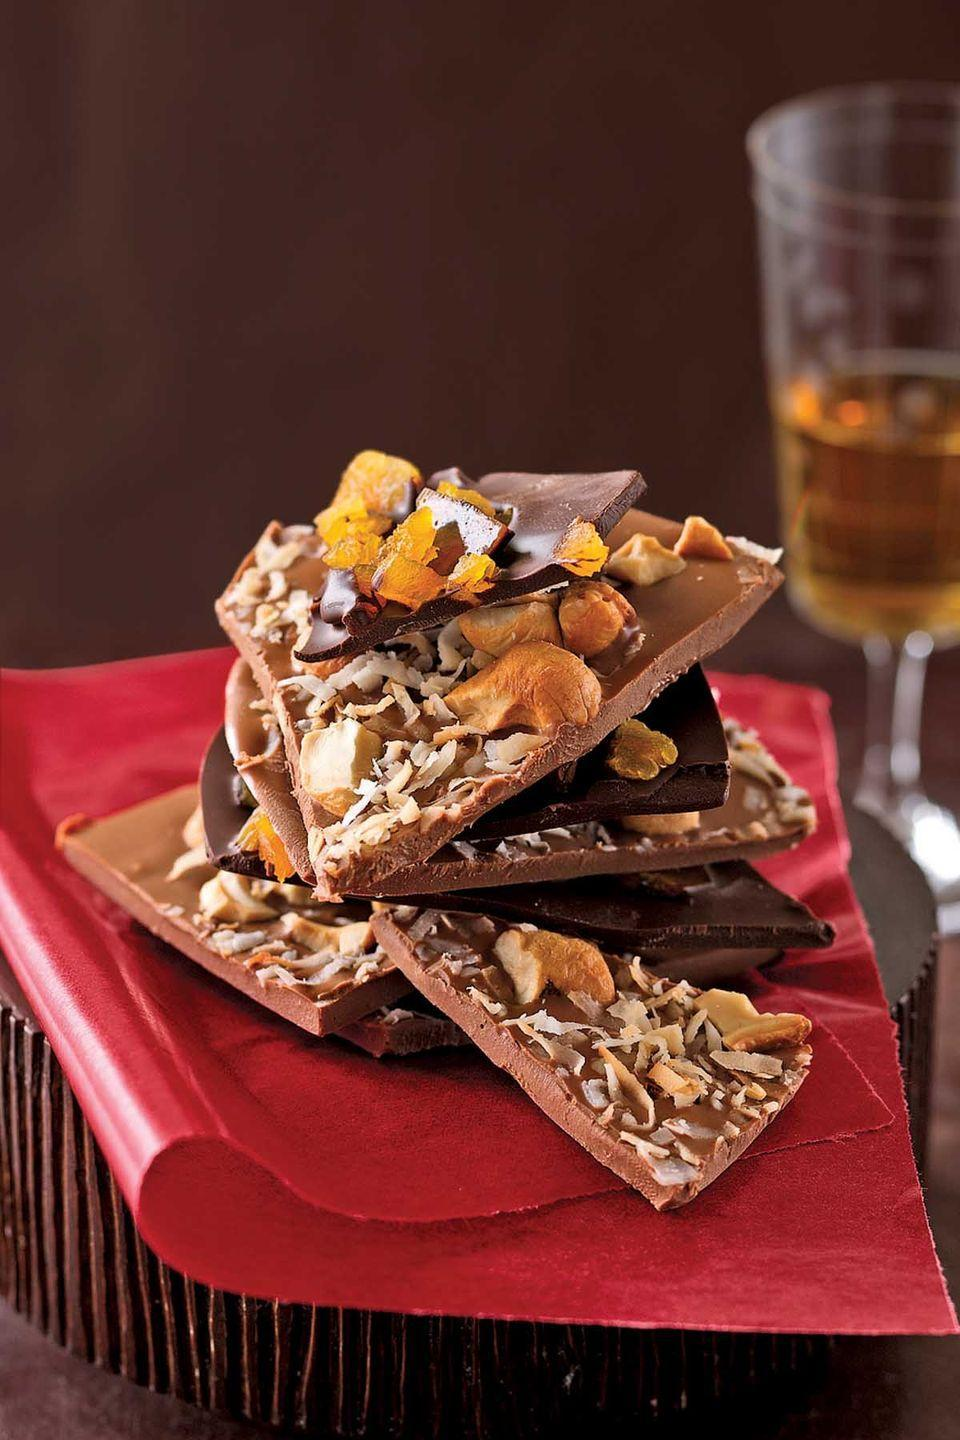 "<p>Requiring just a few simple kitchen utensils, chocolate bark makes a wonderful gift. If you are interested in candy-making, we think you'll find our recipe is the perfect beginning. Customize the bark with your favorite dried fruits and nuts.</p><p><strong><a href=""https://www.countryliving.com/food-drinks/recipes/a786/chocolate-bark/"" rel=""nofollow noopener"" target=""_blank"" data-ylk=""slk:Get the recipe"" class=""link rapid-noclick-resp"">Get the recipe</a>.</strong><br></p>"